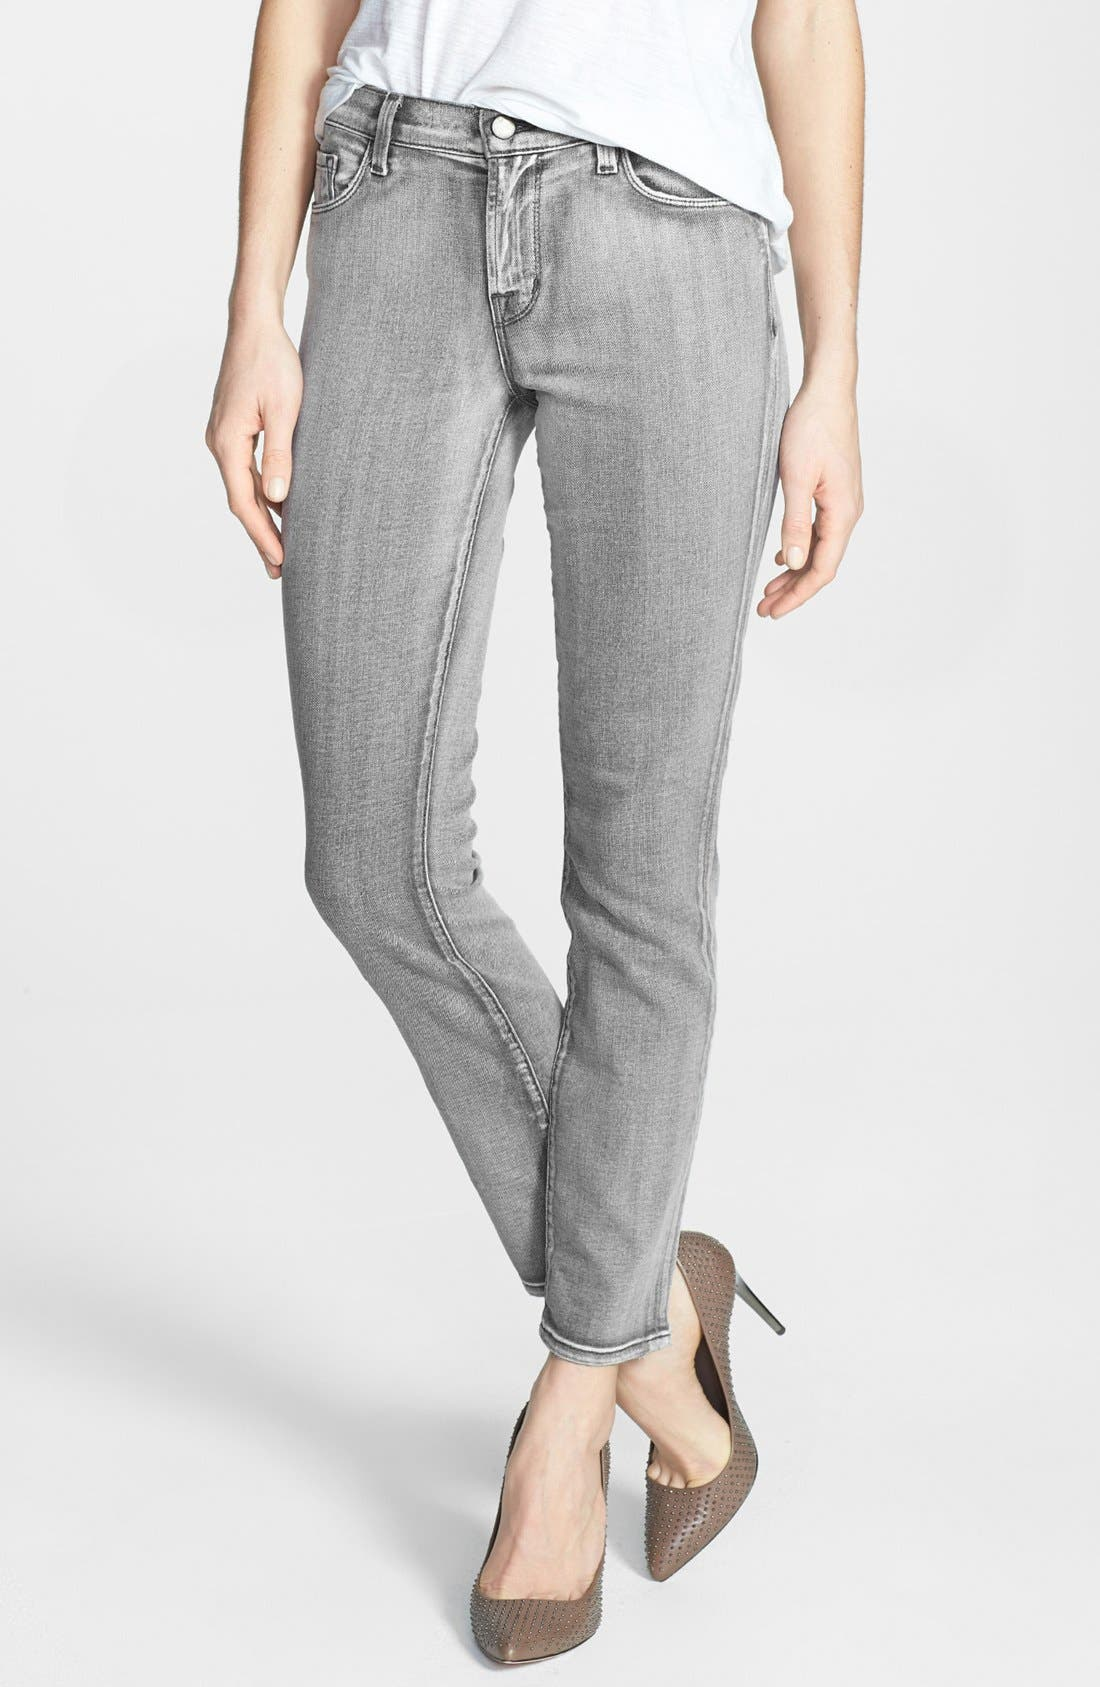 Alternate Image 1 Selected - J Brand '811' Skinny Stretch Ankle Jeans (Smoked Pearl)